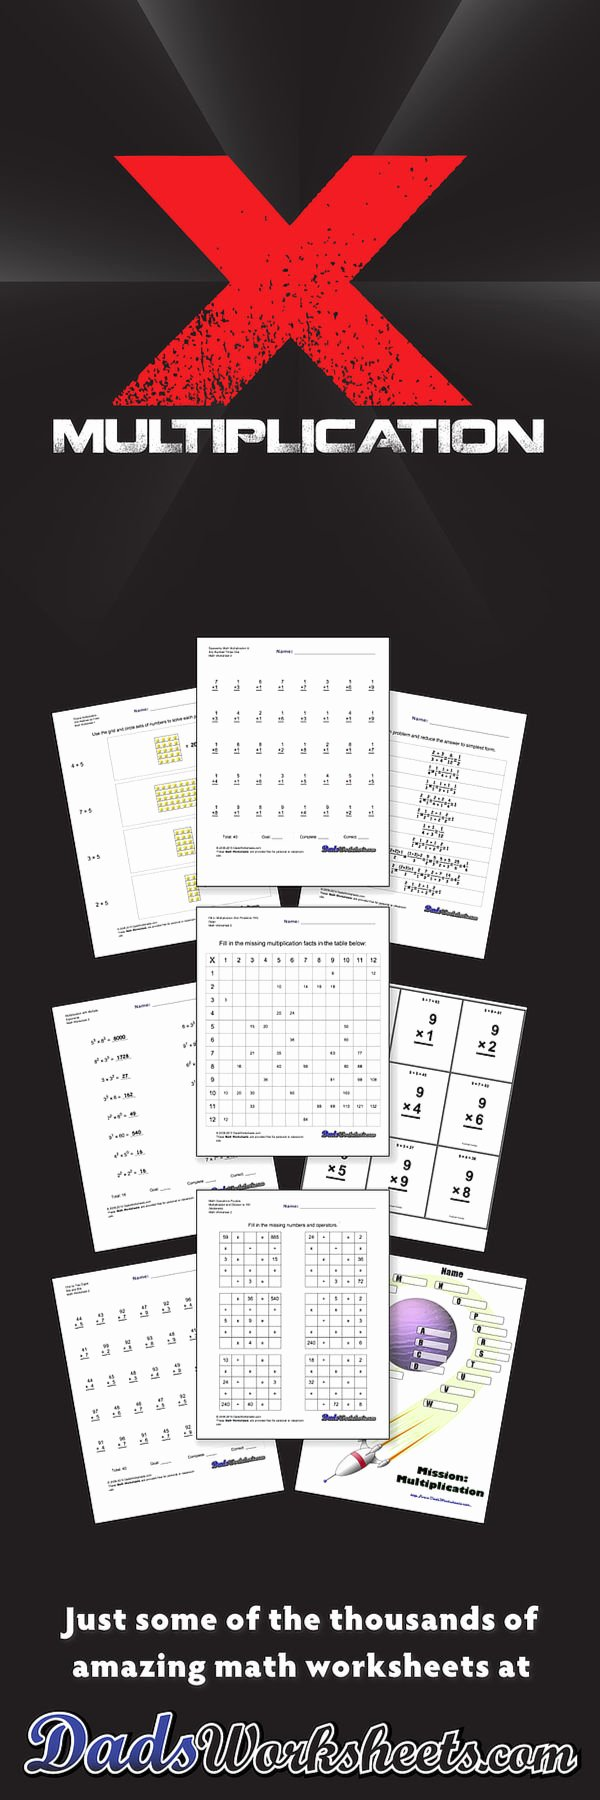 Dads Multiplication Worksheets Lovely 844 Free Multiplication Worksheets for Third Fourth and